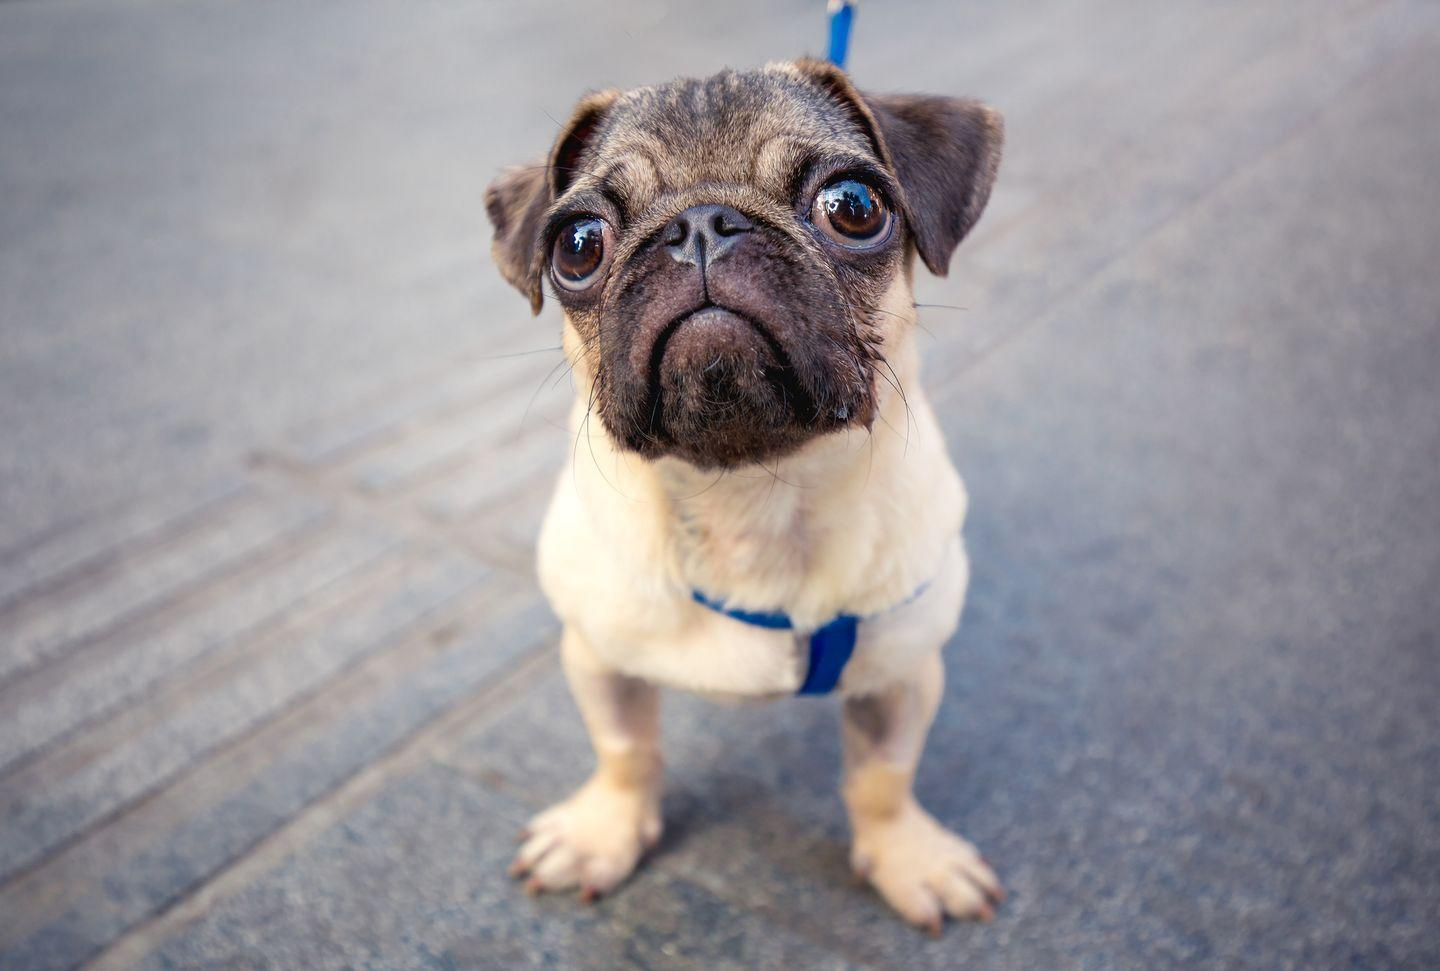 """<p>The personable pug wouldn't exist without the Chinese. Dogtime reports that the breed dates back to <a href=""""https://dogtime.com/dog-breeds/pug#/slide/1"""" rel=""""nofollow noopener"""" target=""""_blank"""" data-ylk=""""slk:the Han dynasty"""" class=""""link rapid-noclick-resp"""">the Han dynasty</a> in 206 B.C. They were dogs for the emperors and lived in fancy accommodations guarded by soldiers.</p>"""